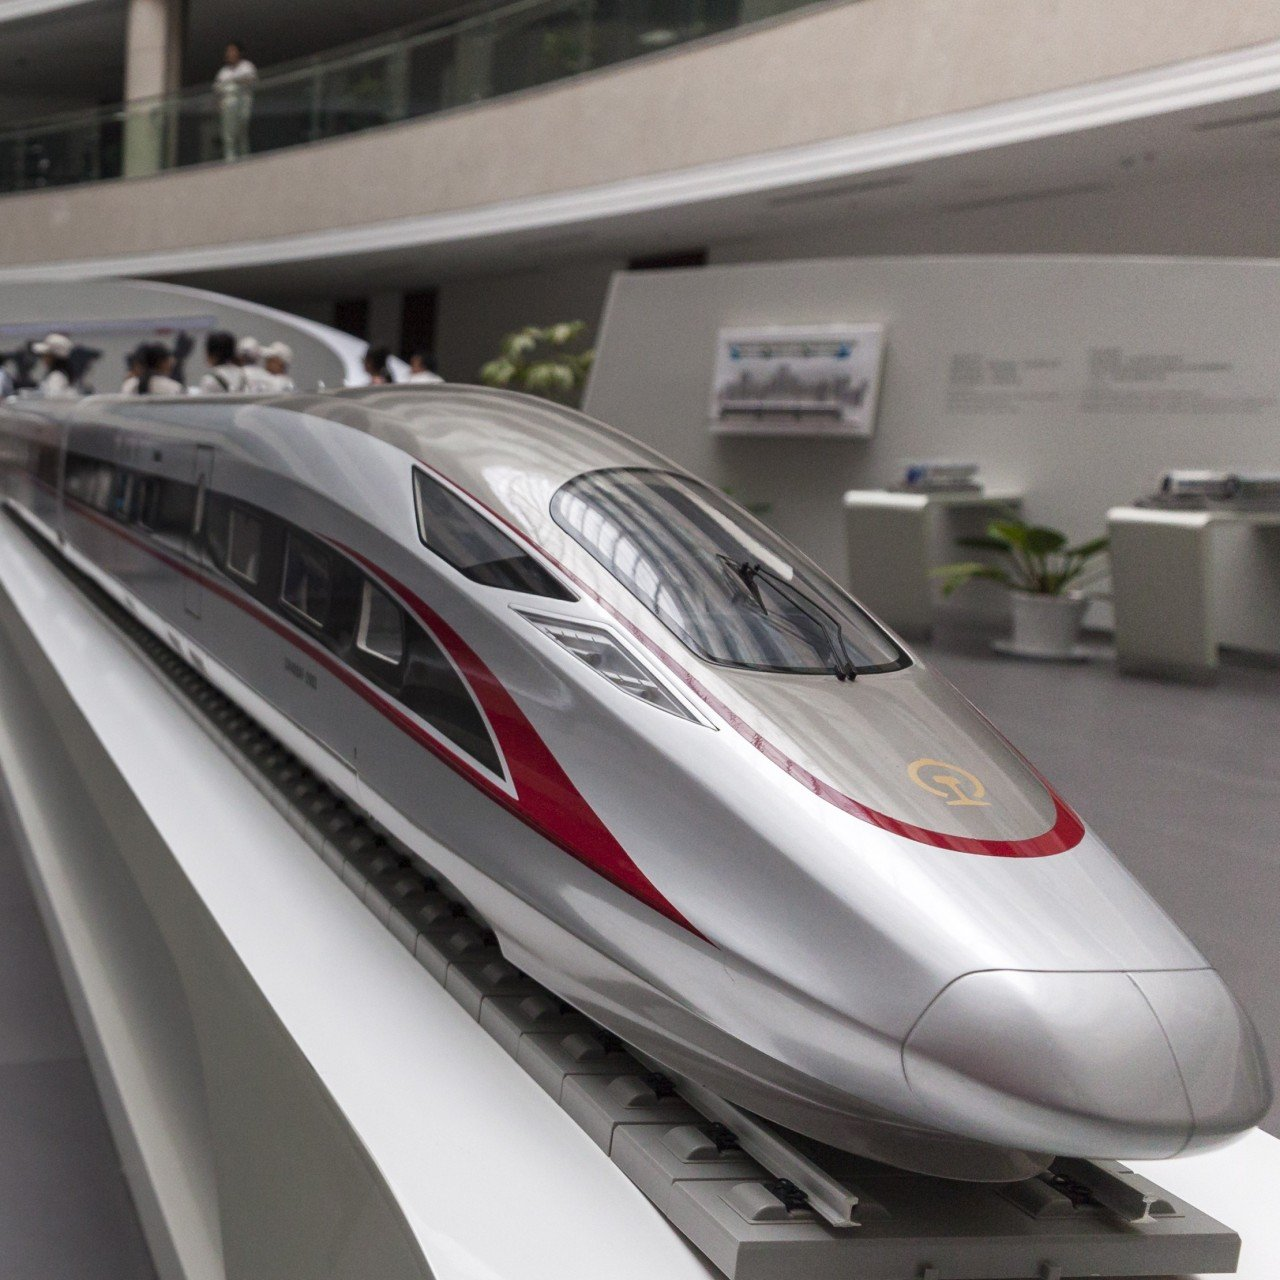 China wants to fund Thailand's US$12 billion high-speed railway